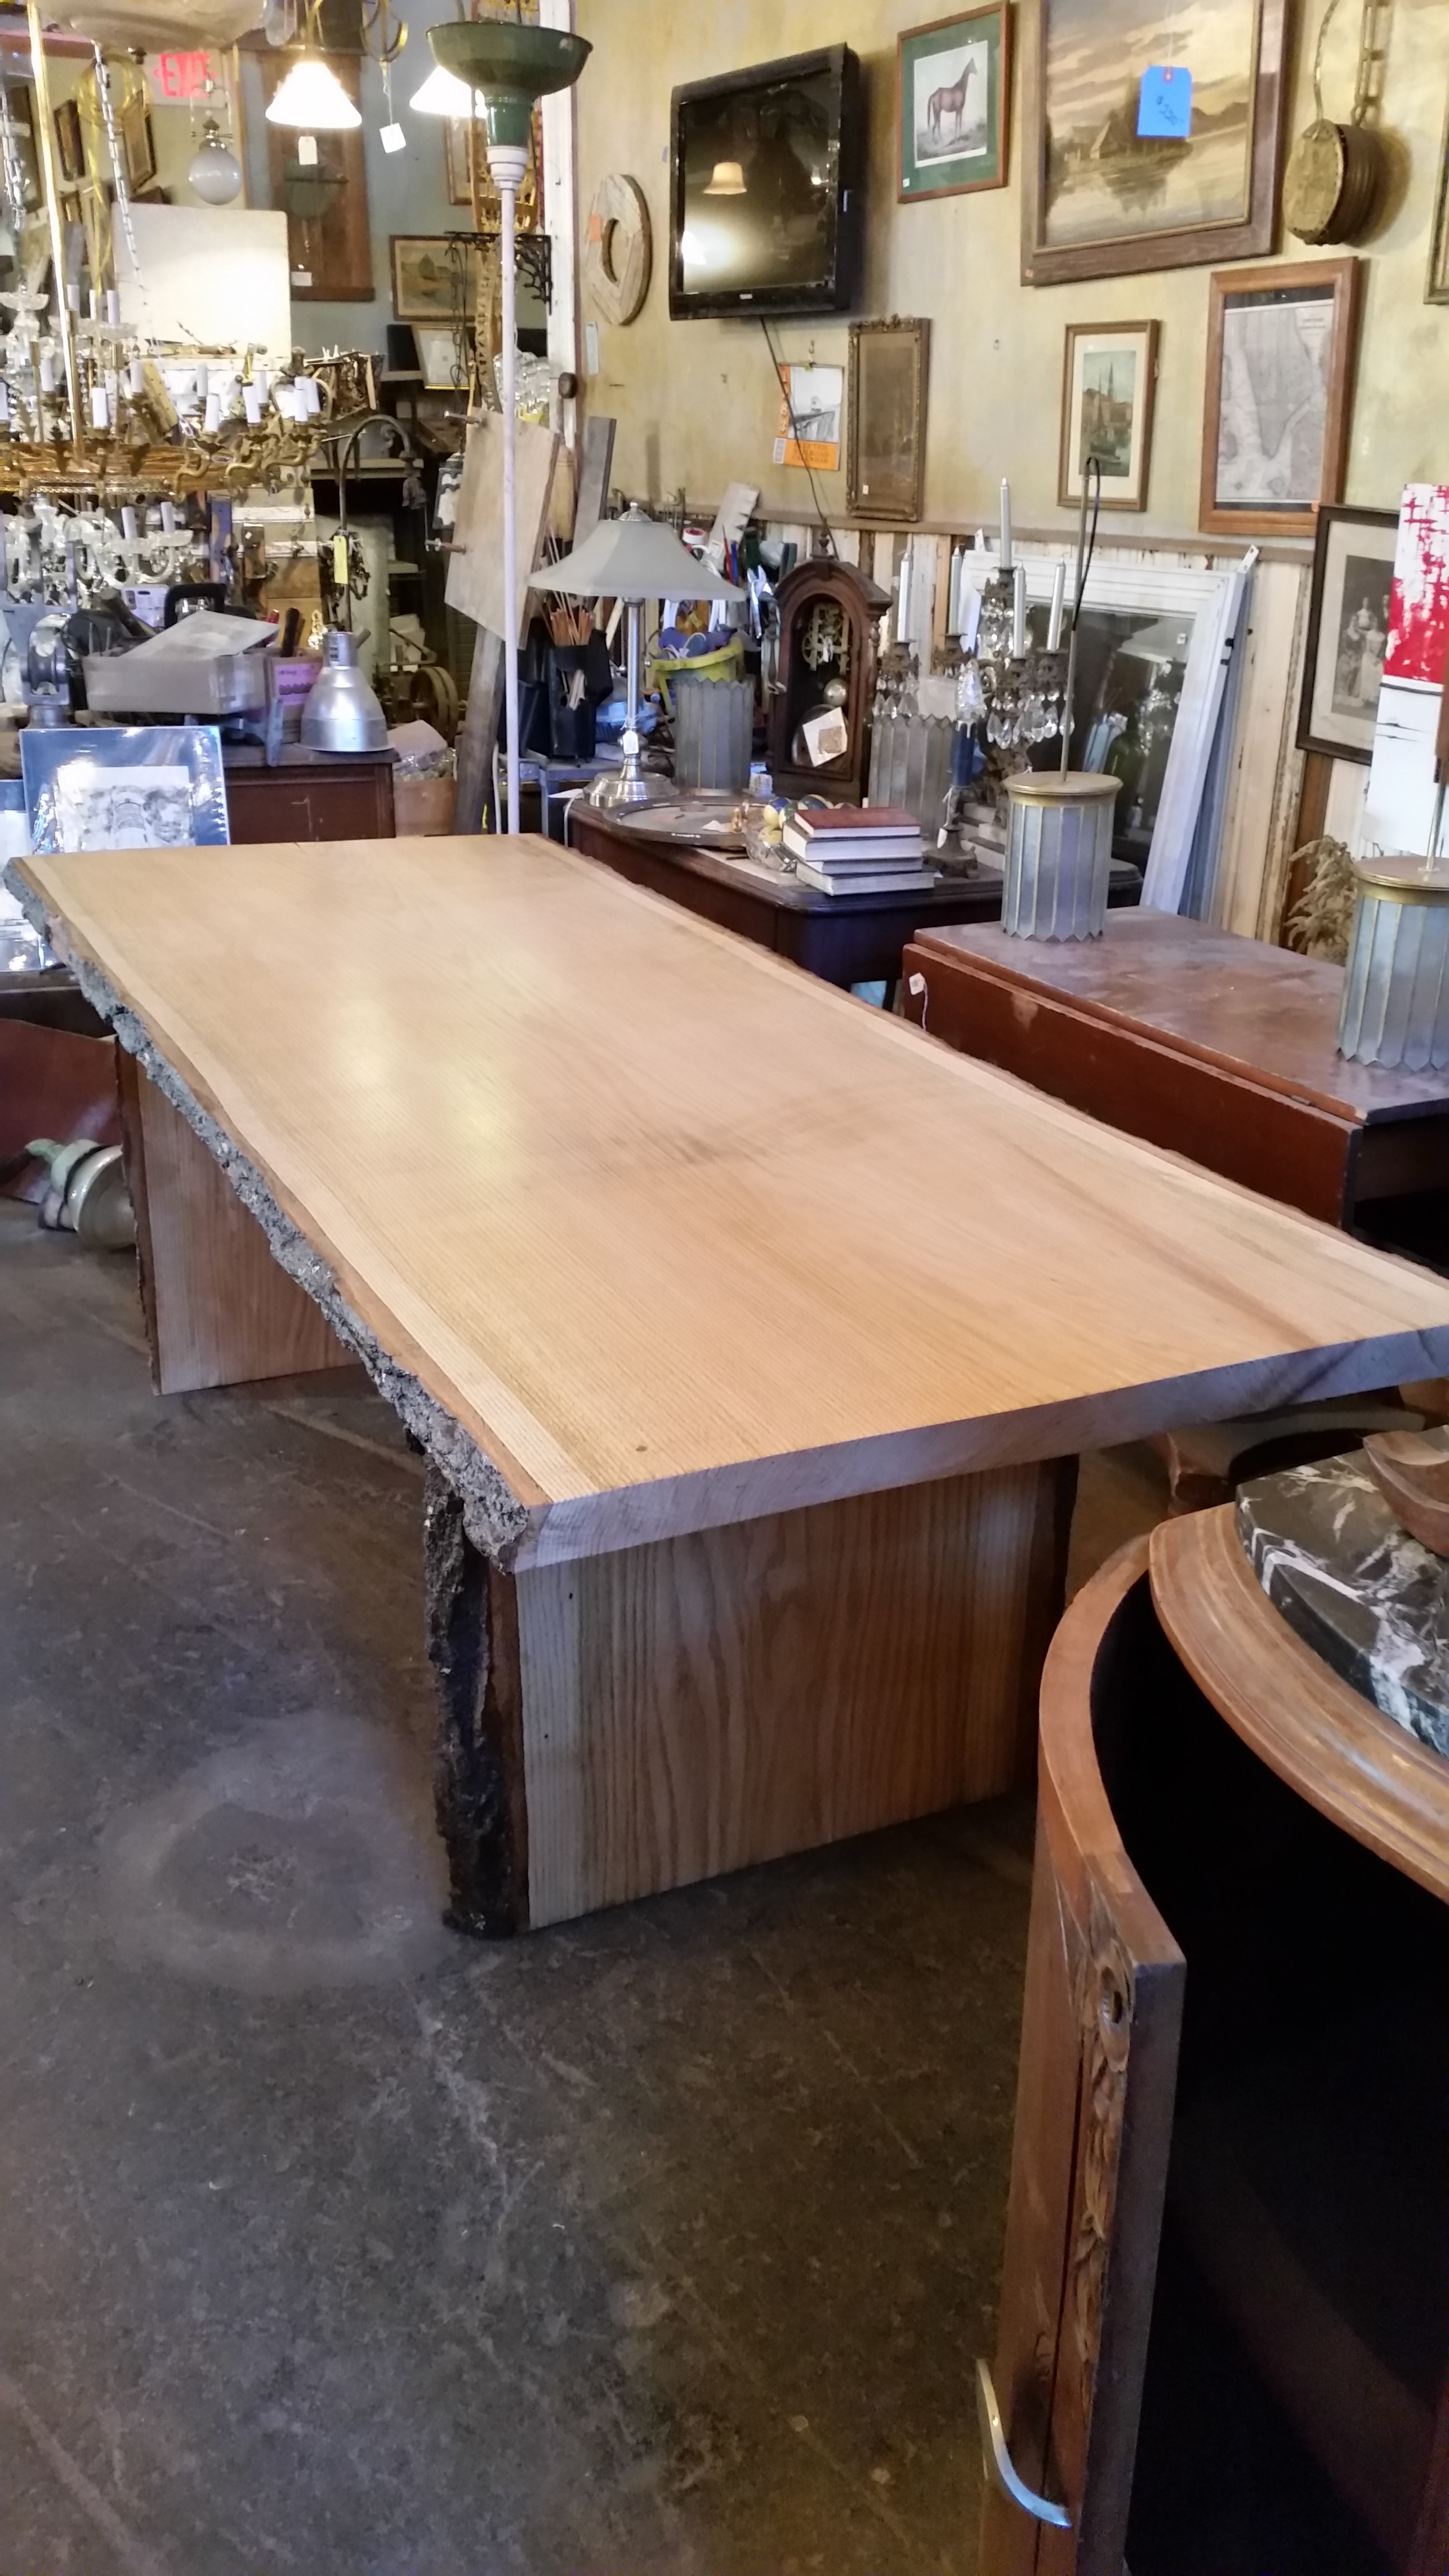 Swell Live Edge Red Oak Dinning Table 8Ft From Waters Woods Creations Download Free Architecture Designs Licukmadebymaigaardcom